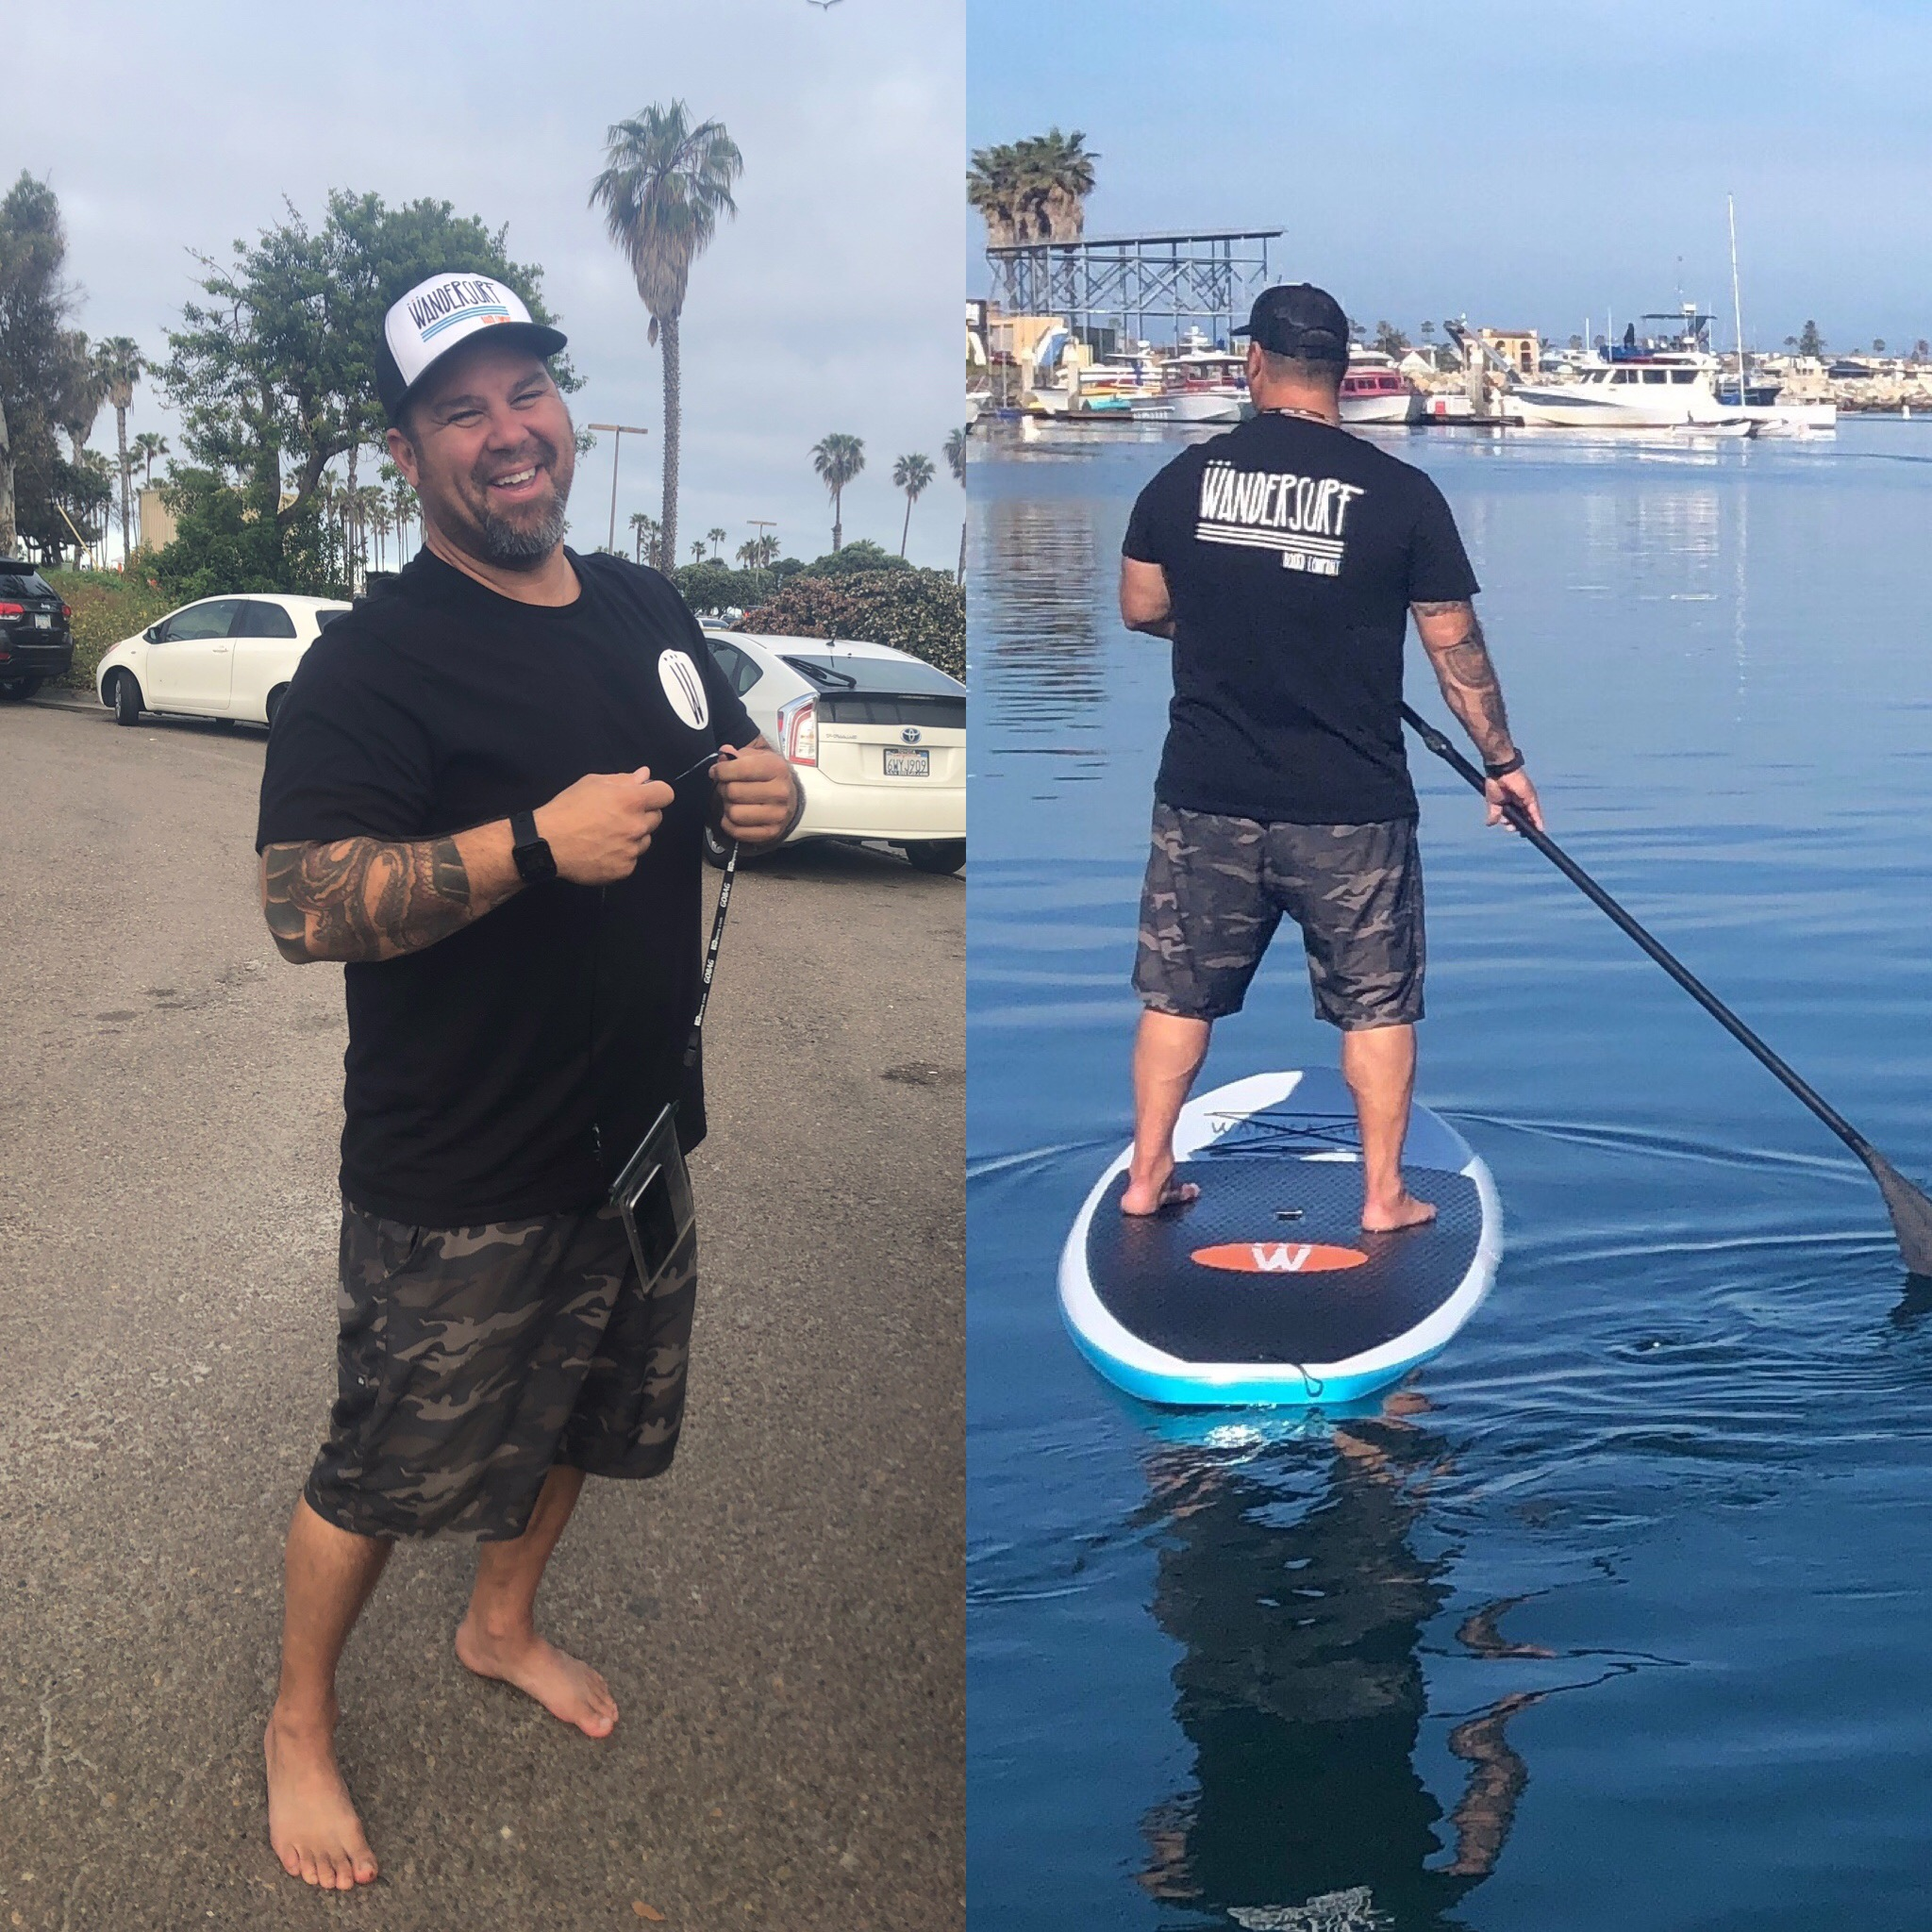 INSTRUCTOR   Hey everyone I'm your instructor Jason Gonzales. WanderSurf is my dream come true. I started this company to spread the joy and love of standup paddle boarding. With over 25 years of surfing and paddling experience I will make sure you hit the water with confidence and style. Come take a lesson and experience something new and exciting. Standup paddle boarding is an excellent way to build strength, balance (mental and physical), and community. Find your new passion and book your lesson, tour, or rentals today.